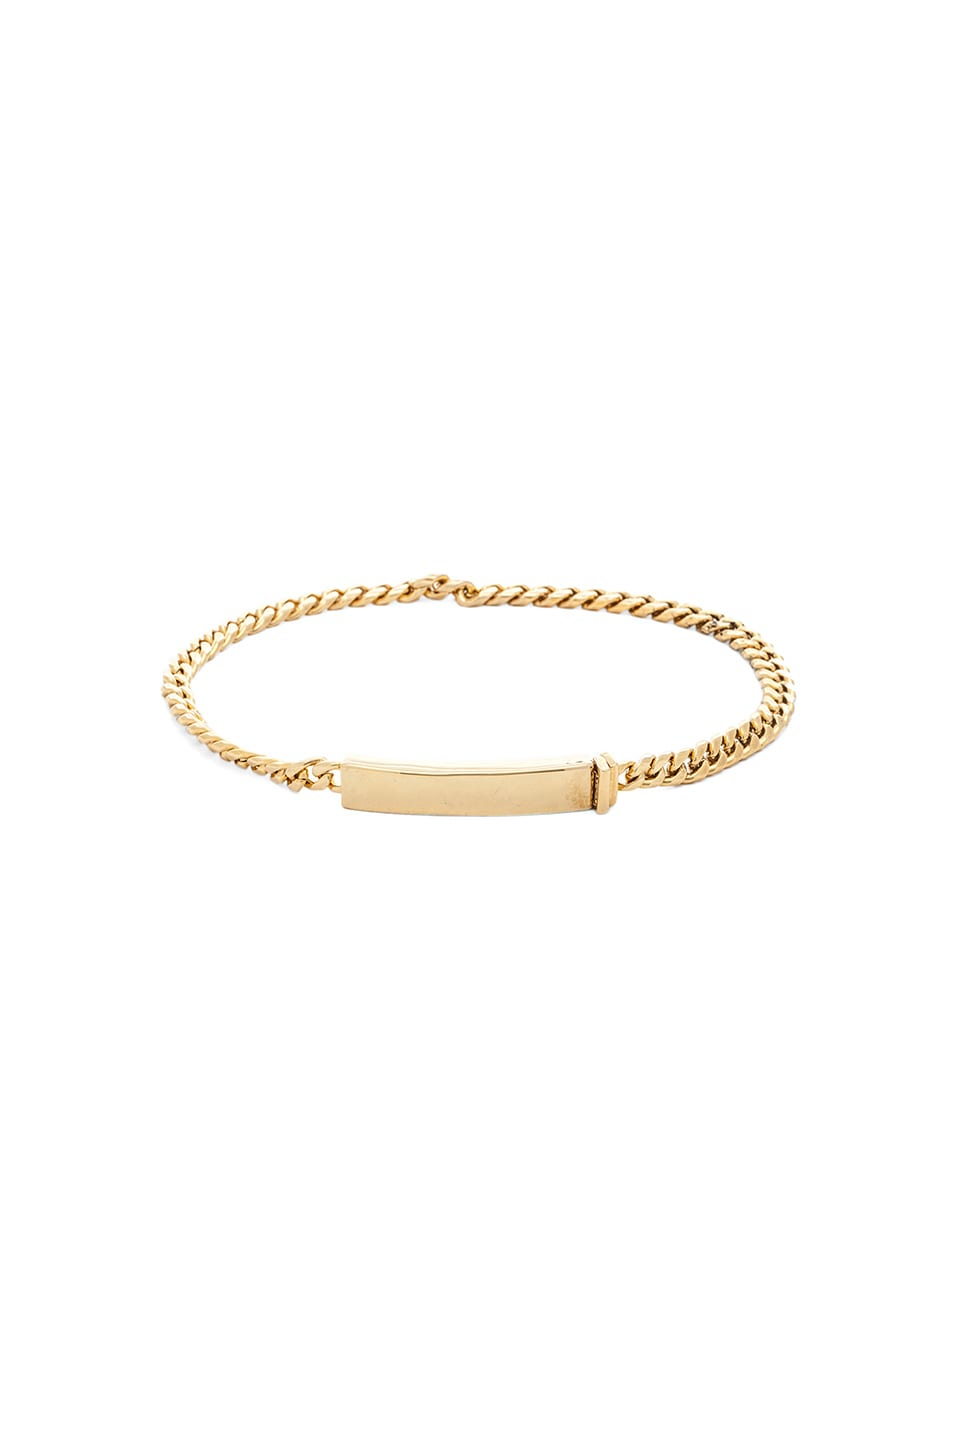 Luv AJ Convertible ID Bracelet in Antique Gold